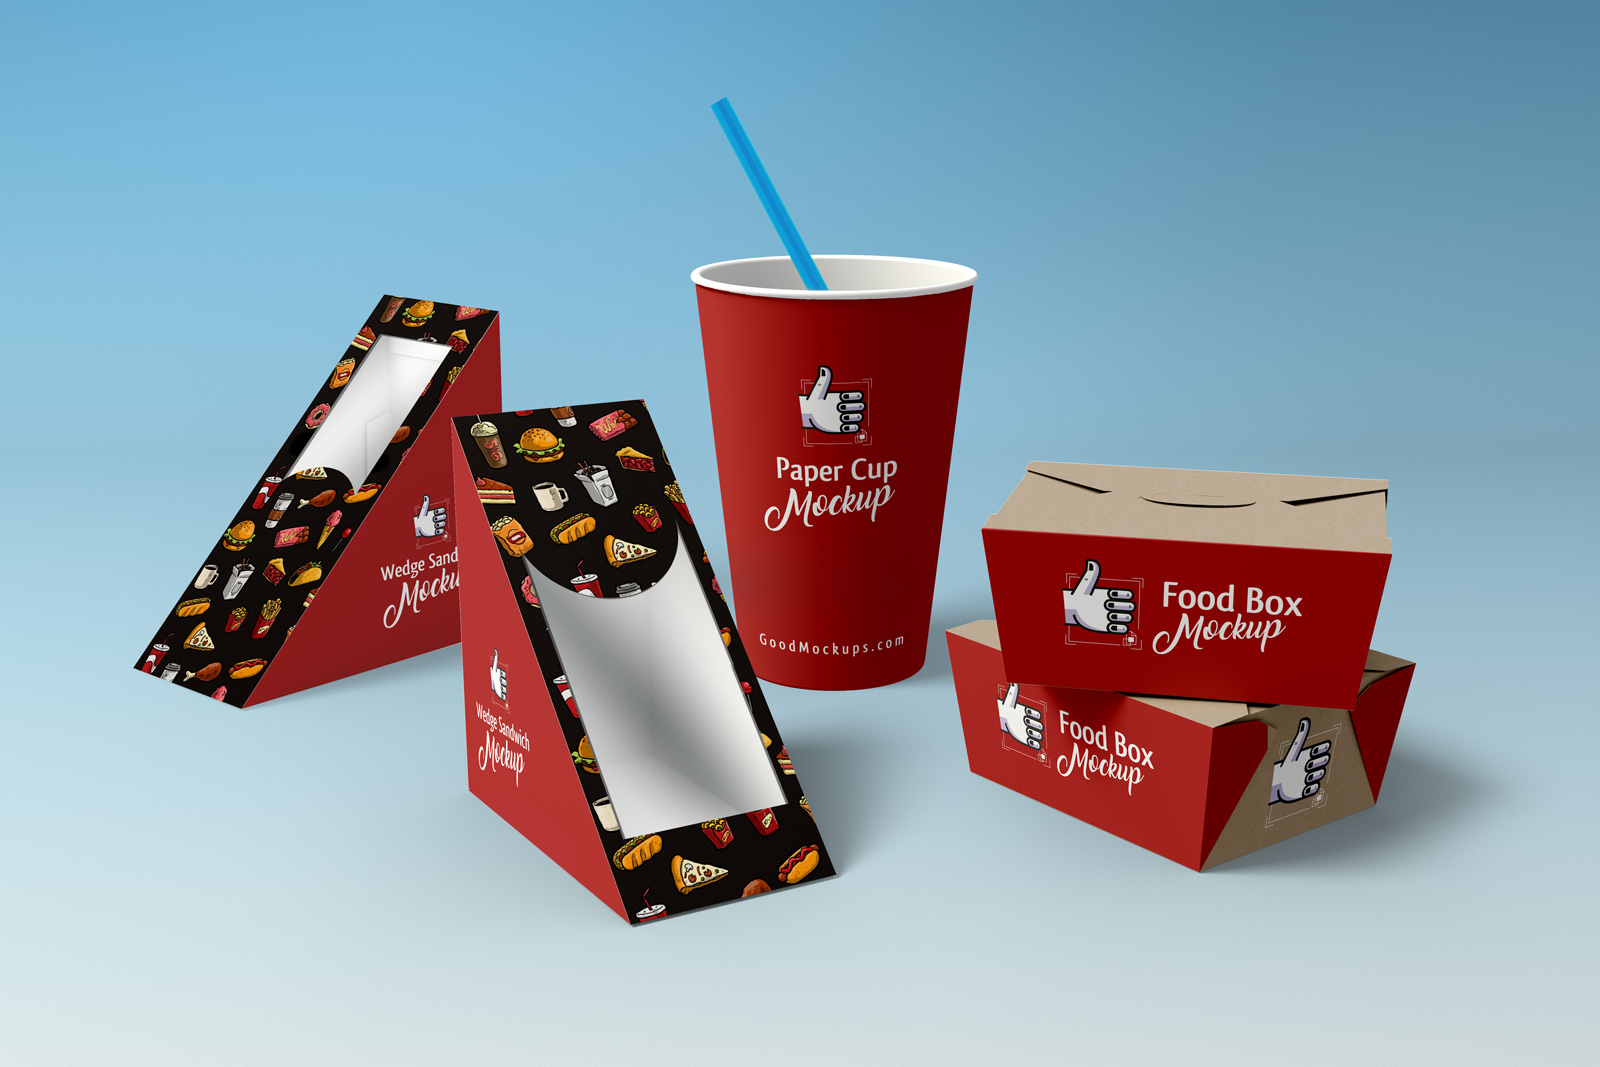 Free Wedge Sandwich, Food Box & Paper Cup Packaging Mockup PSD